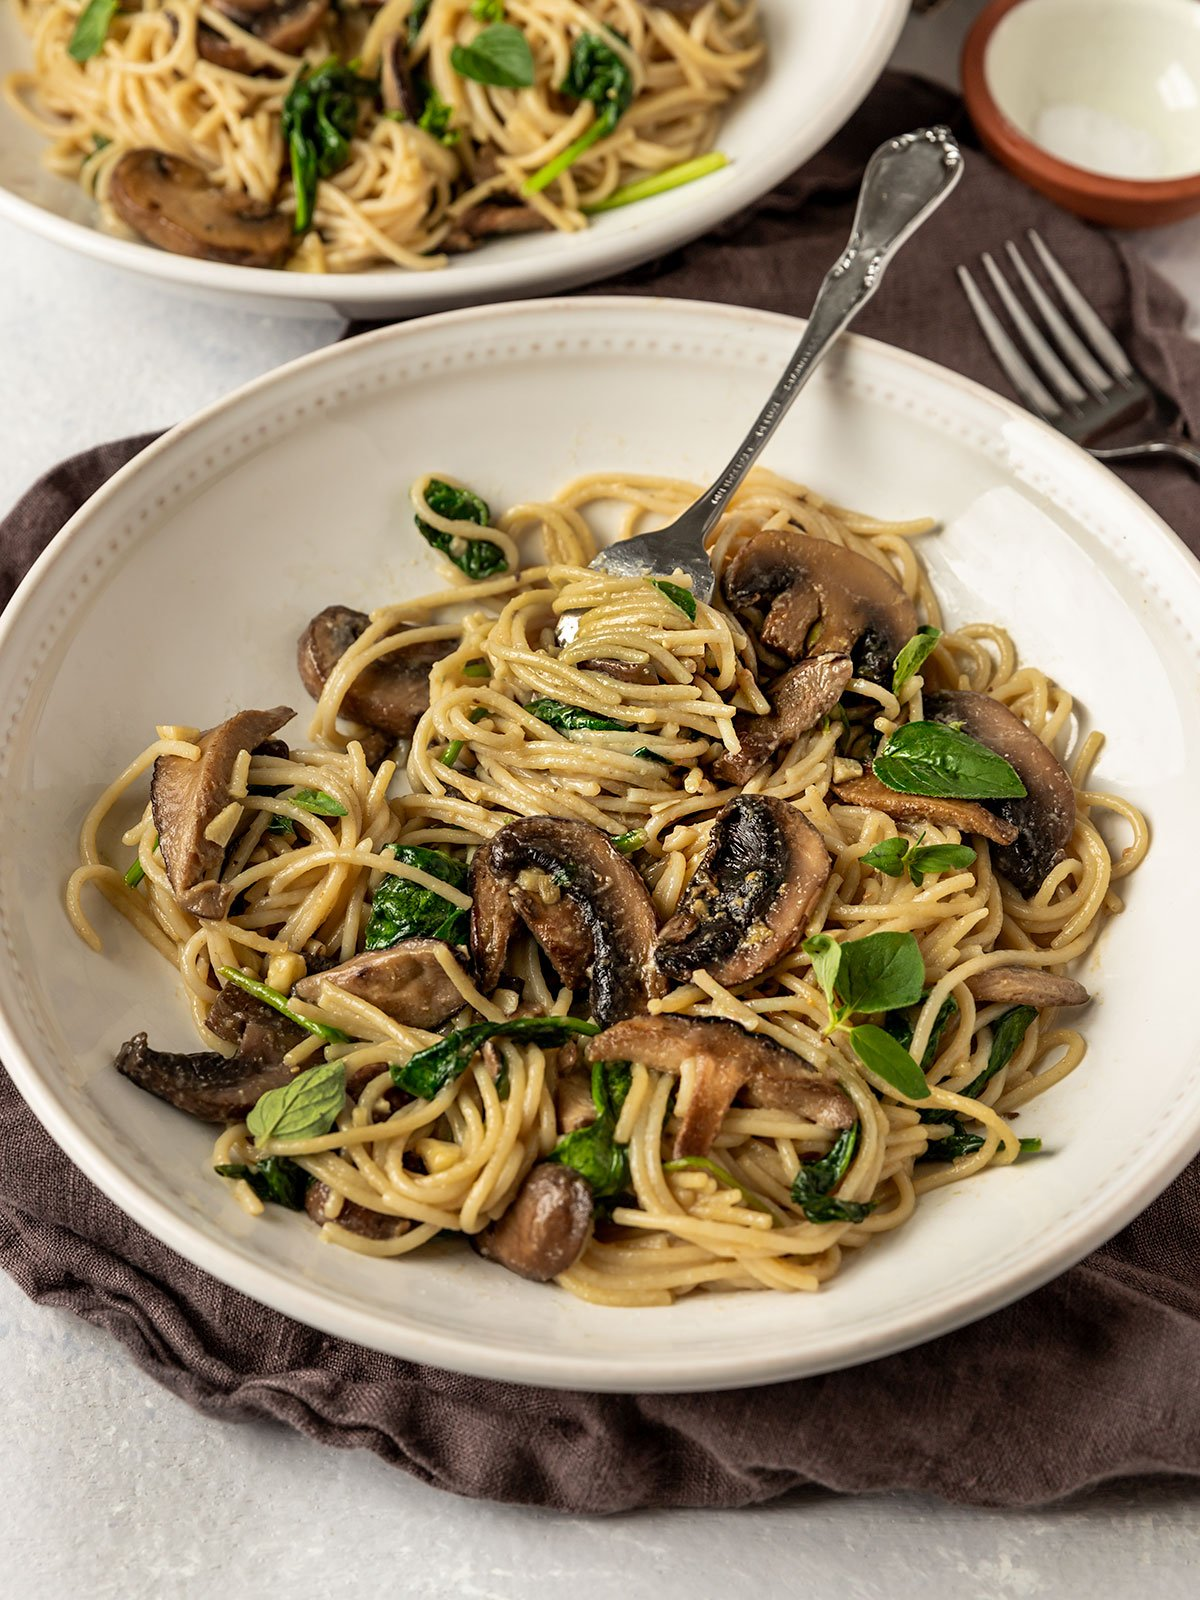 a plate of pasta with mushrooms, spinach, and miso butter sauce